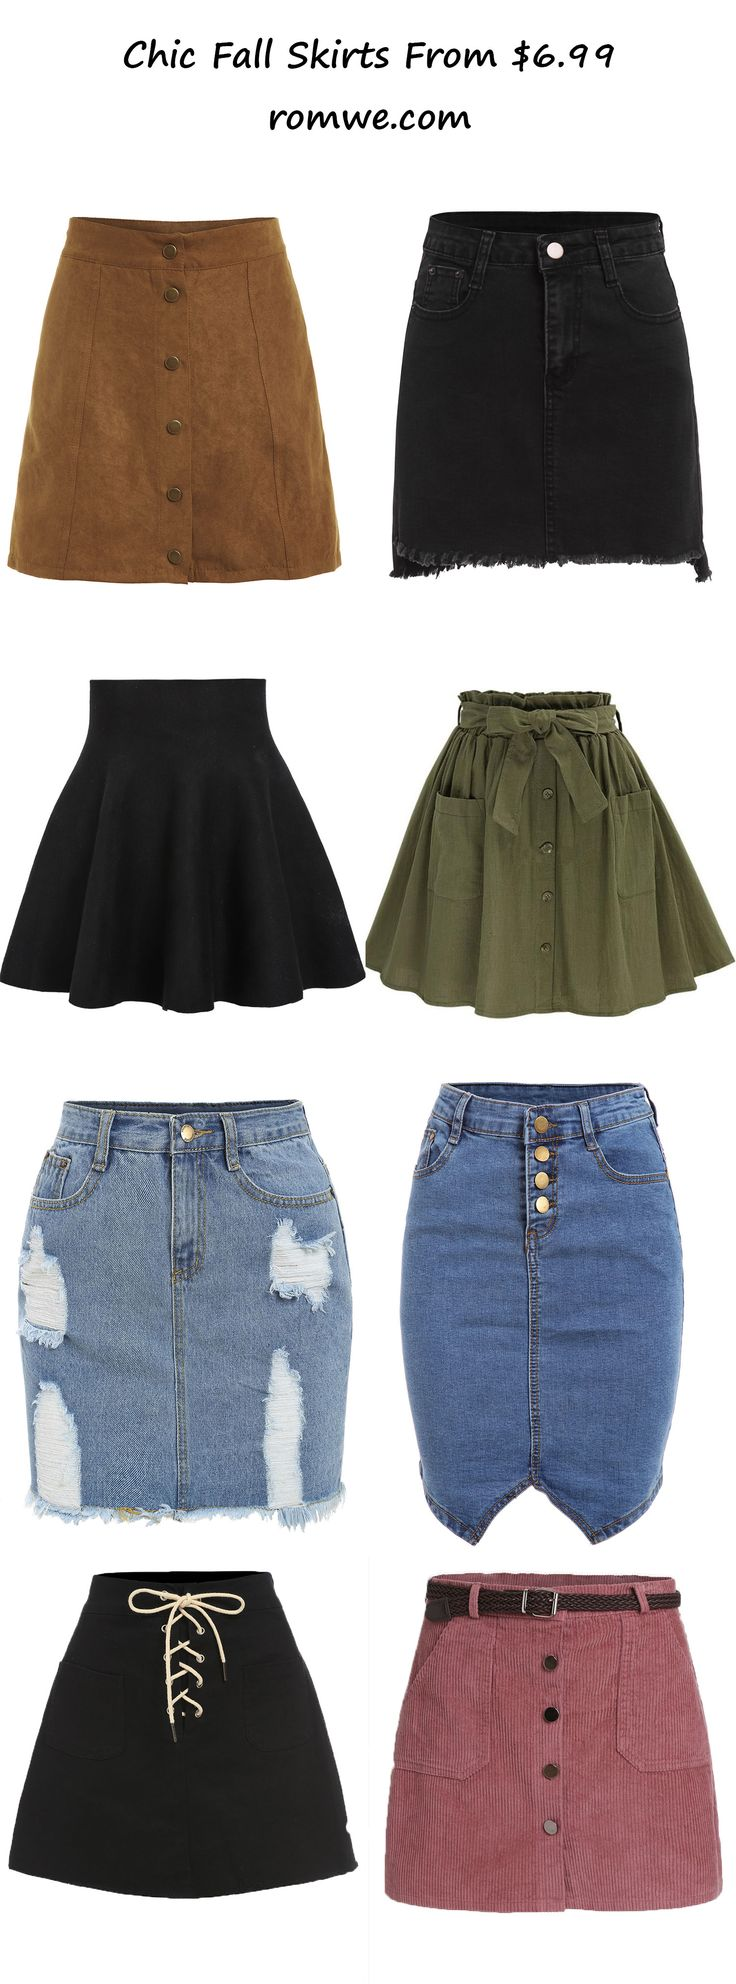 fall chic skirts 2017 - romwe.com